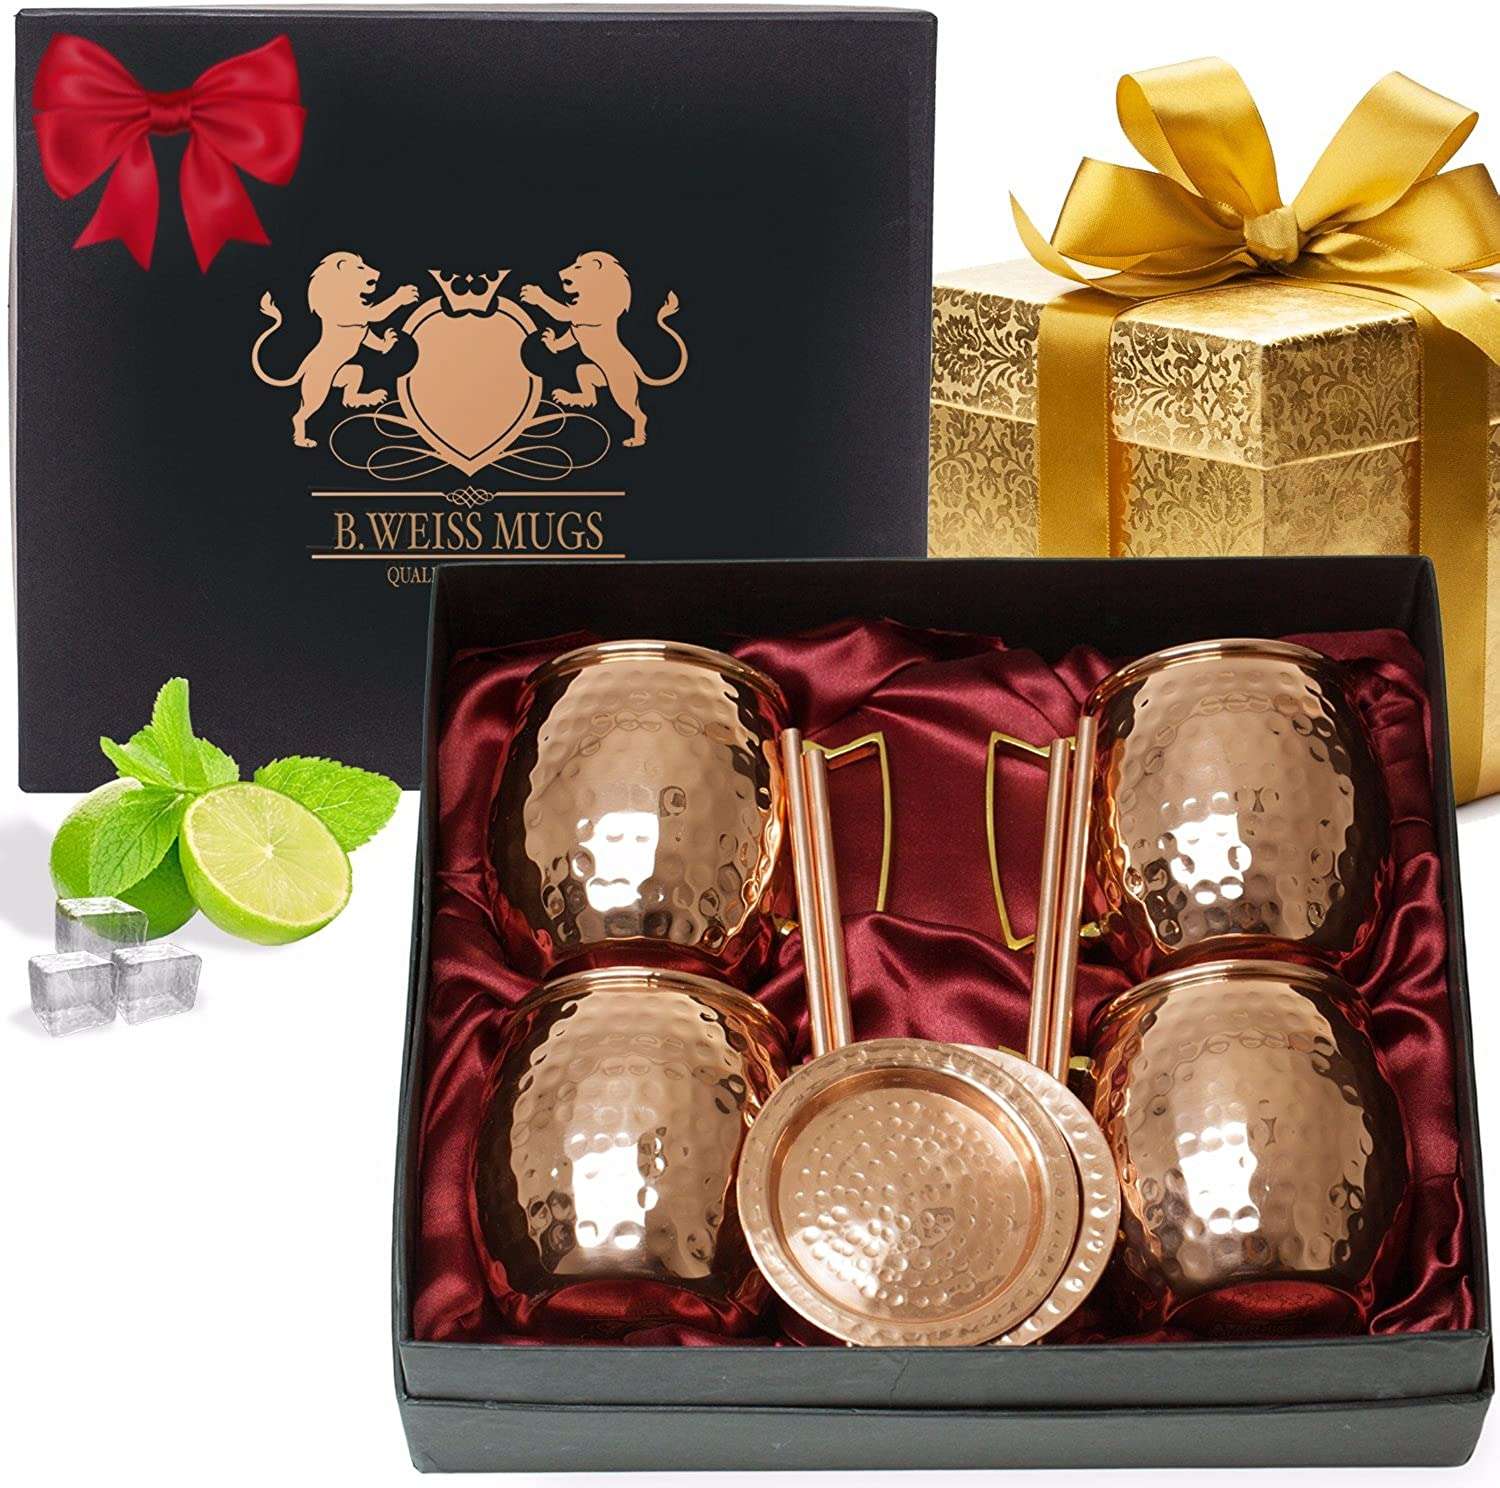 Copper Mugs Moscow Mule Set Of 4, By B.WEISS Handmade Hammered Copper Cups 100% Pure Copper Comes in an elegant gift box+Bonus  4 copper straws+4 copper coasters